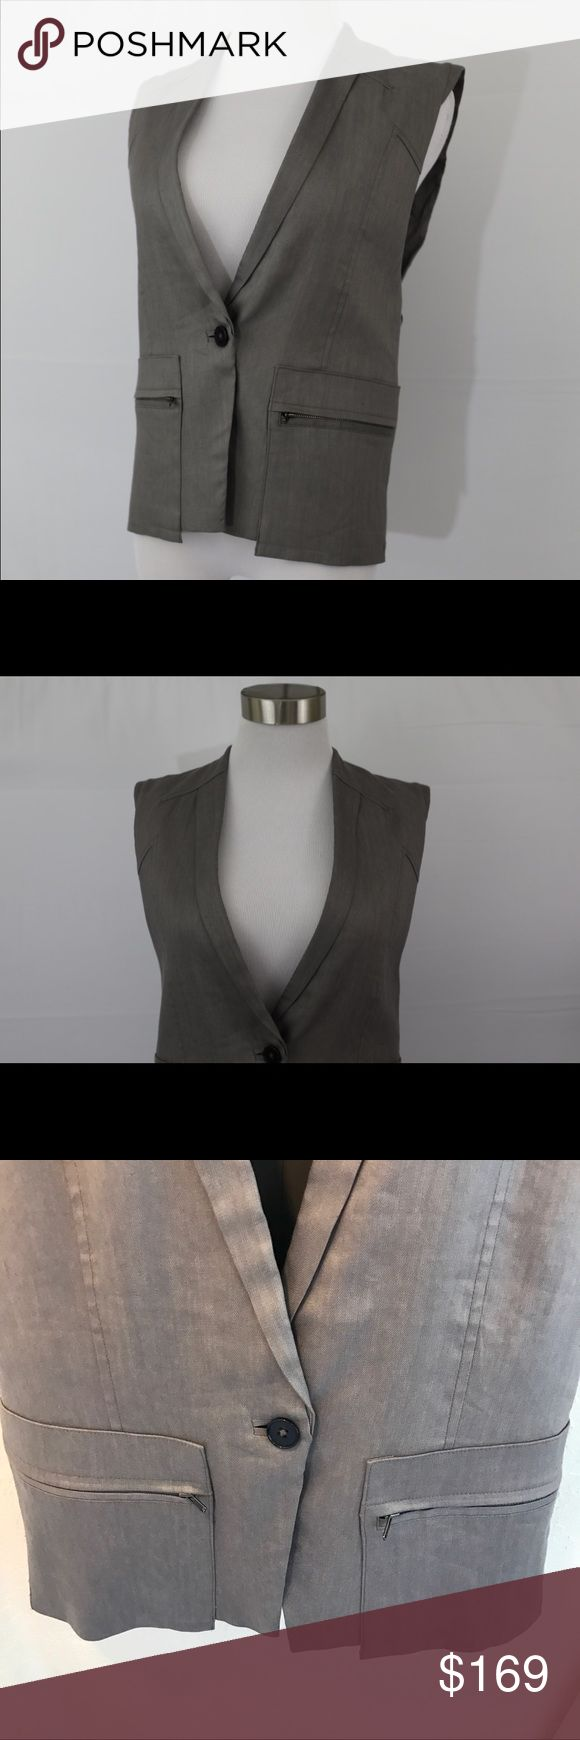 """(NWT) Helmut Lang Linen Blend Vest Helmut Lang Linen Blend Vest   Retail Price: $398 Size: XS   Brand new, no holes, stains or snags, tags still attached. Runs large. Super chic linen blend vest. One button closure wth zipper detailing at pockets. Fully lined. Wear with a white tank and skinny jeans or apencil skirt, Size P=XS or Small. Made of 66% linen,32% viscose, 2% elastane. Lined with 94% polyester, 6% polyurethane. Measurements: Shoulder to shoulder: 14"""" , Underarm to underarm: 18.5""""…"""